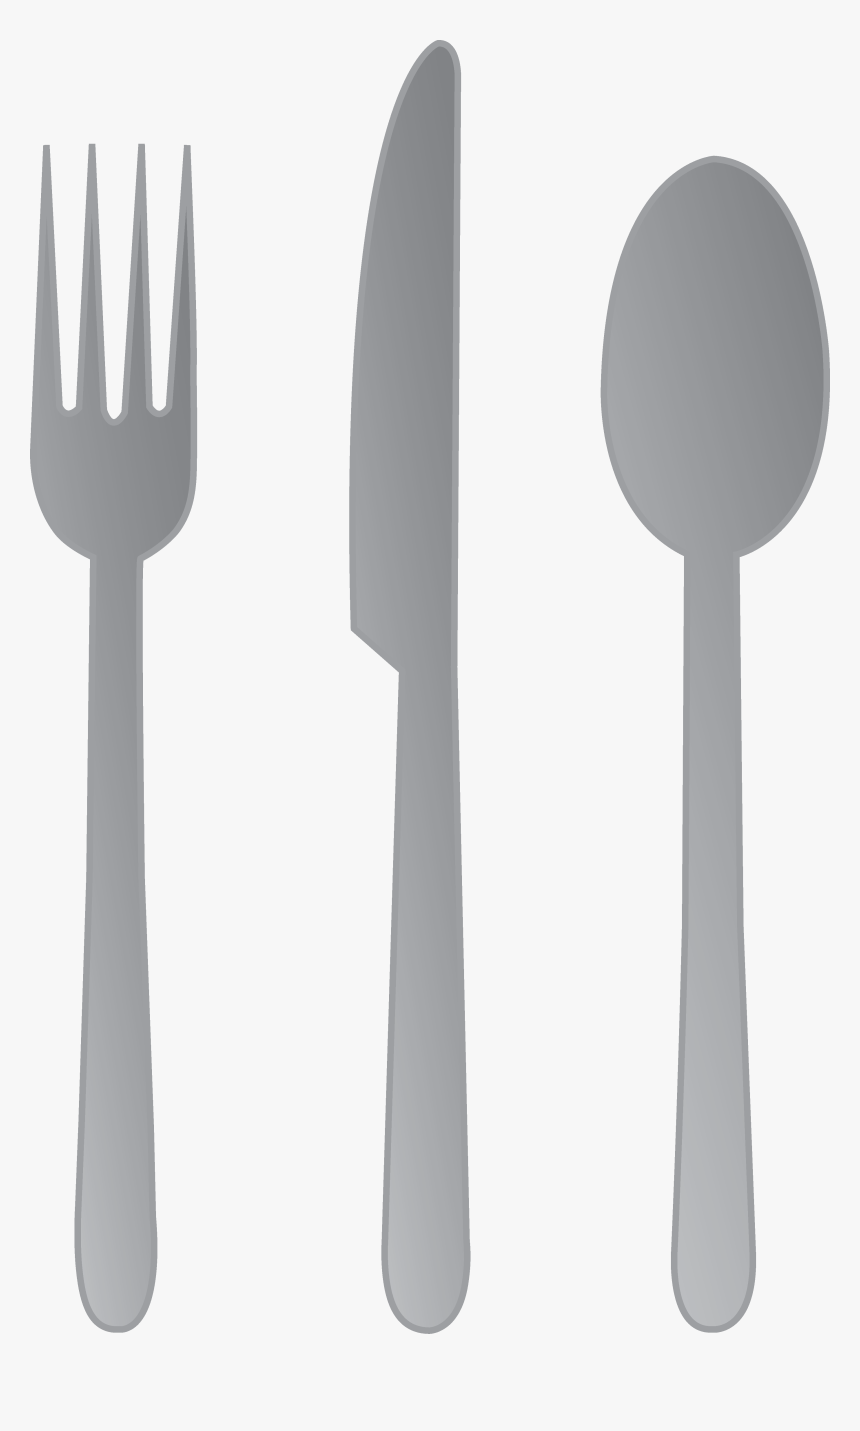 Forks And Spoons Png Fabulous Knives Forks - Fork Knife And Spoon Clipart, Transparent Png, Free Download